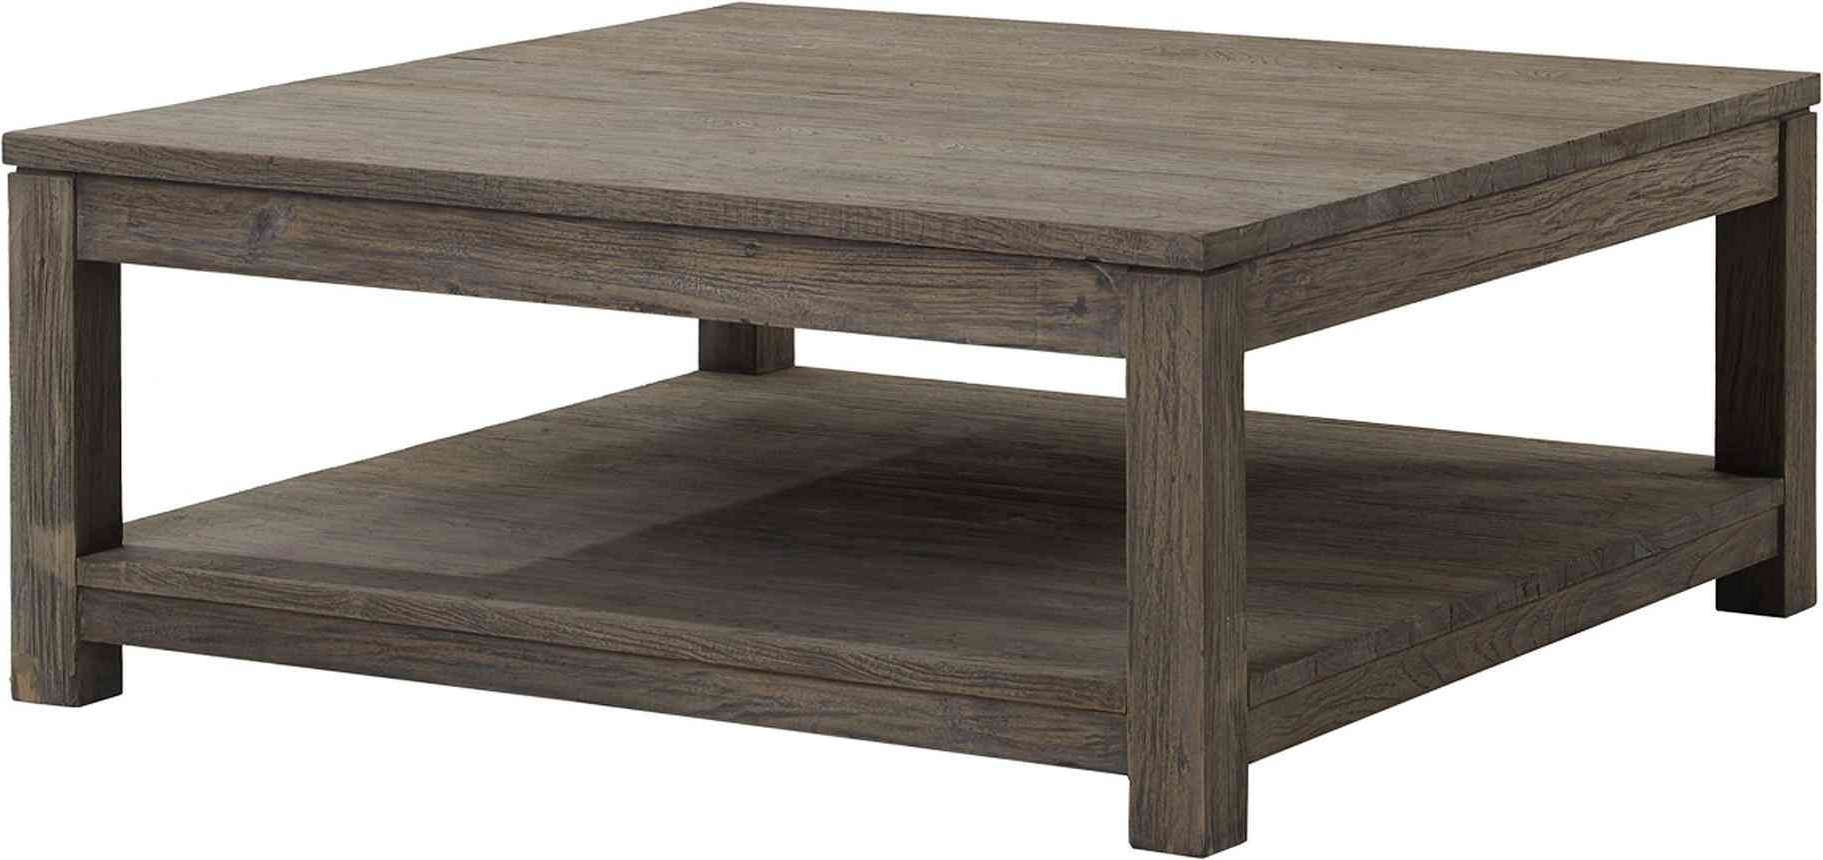 Decorating Large Square Coffee Table